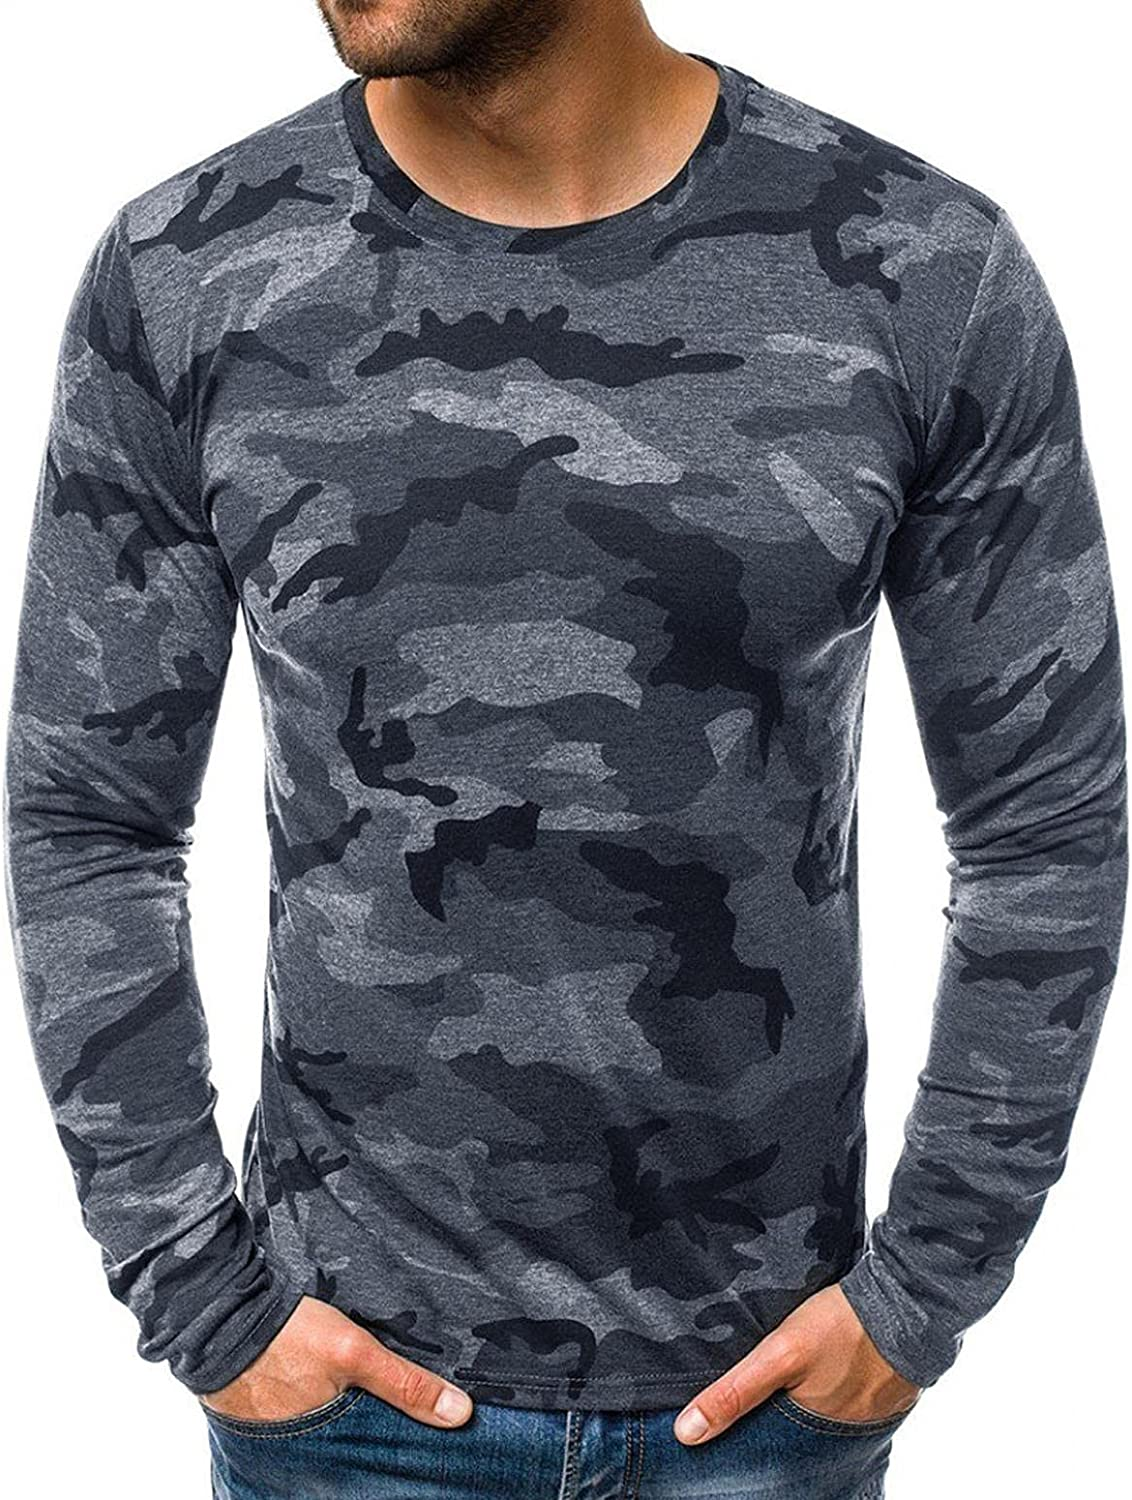 XUNFUN Mens Camouflage Printed T Shirt Slim Fit Long Sleeve Crewneck Stretch Military Muscle Workout Tops Blouse Baselayer